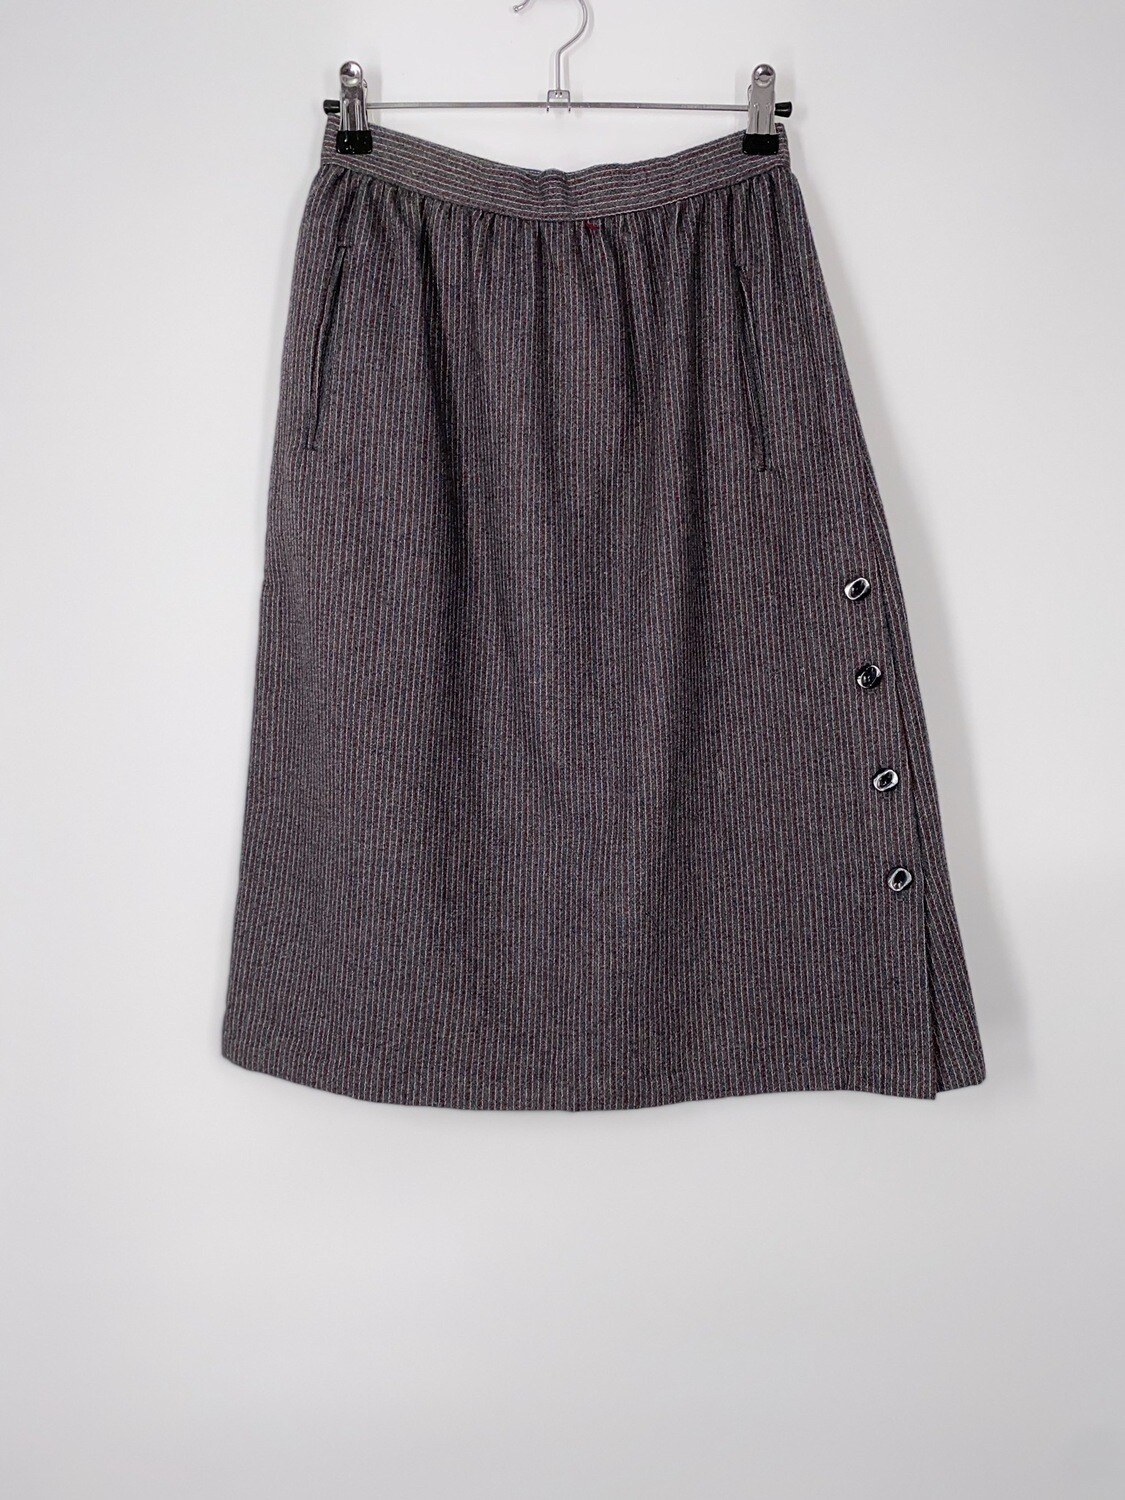 Grey Striped Wool Skirt Size S